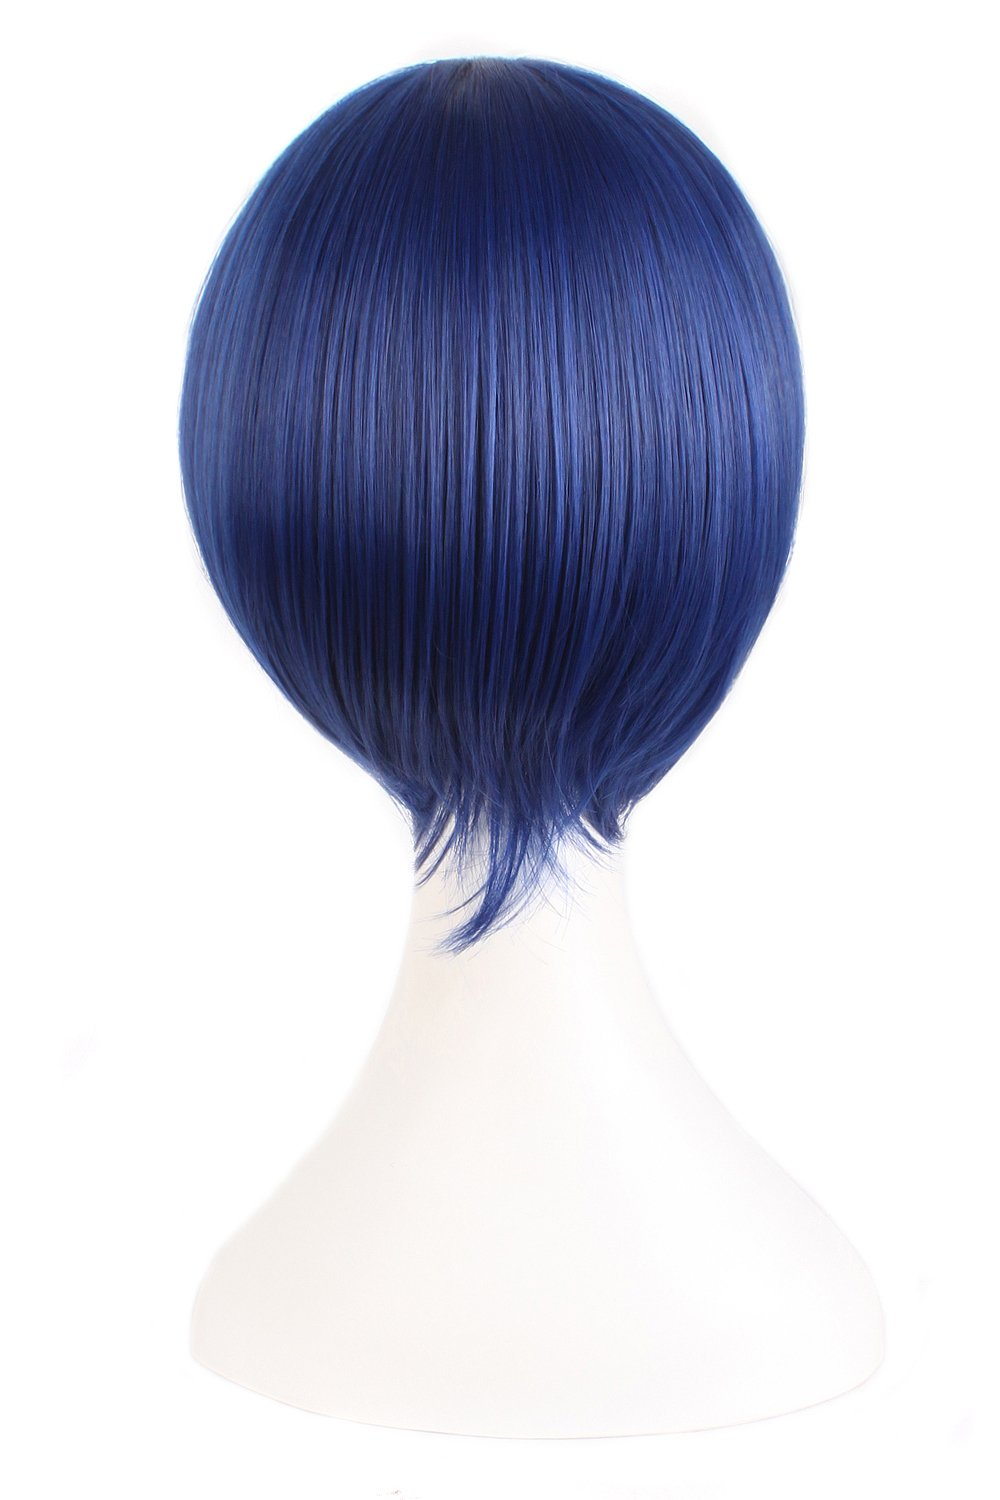 MapofBeauty 12''/30cm Short Straight Cosplay Costume Wig Party Wig (Mixed Blue) by MapofBeauty (Image #1)